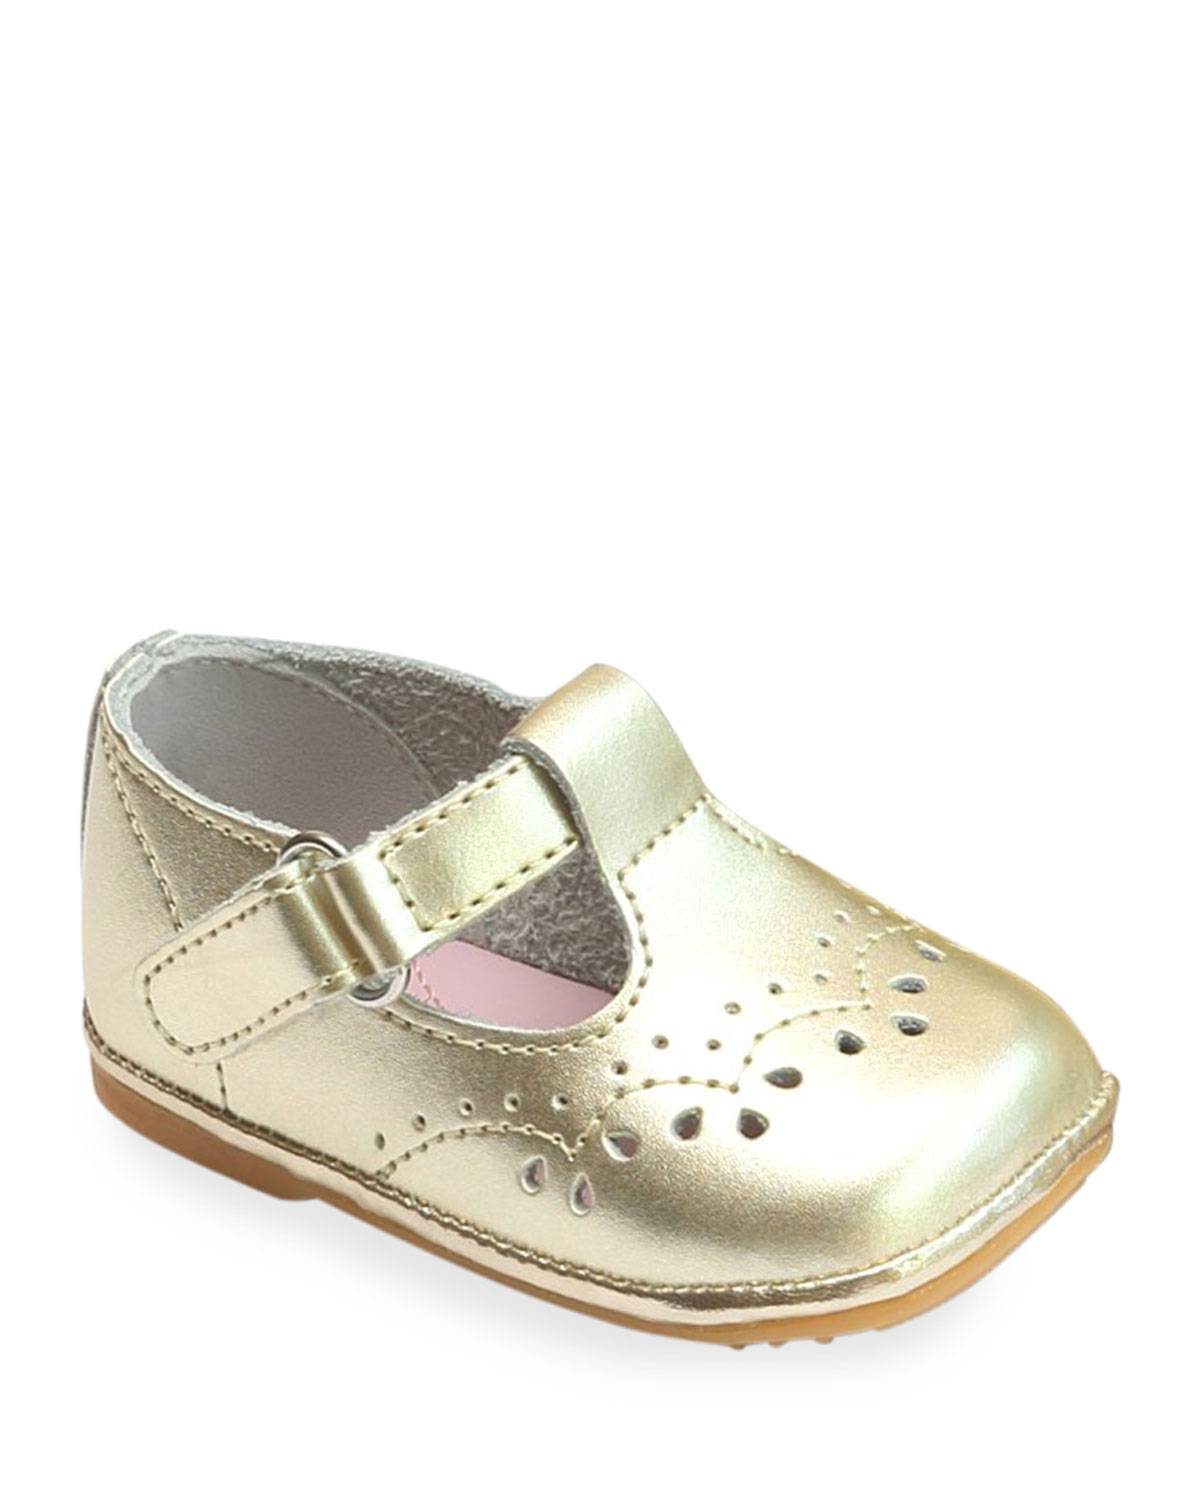 L'Amour Shoes Birdie Metallic Leather T-Strap Brogue Mary Jane, Baby  - female - YELLOW - Size: 3 Baby (6-9M)